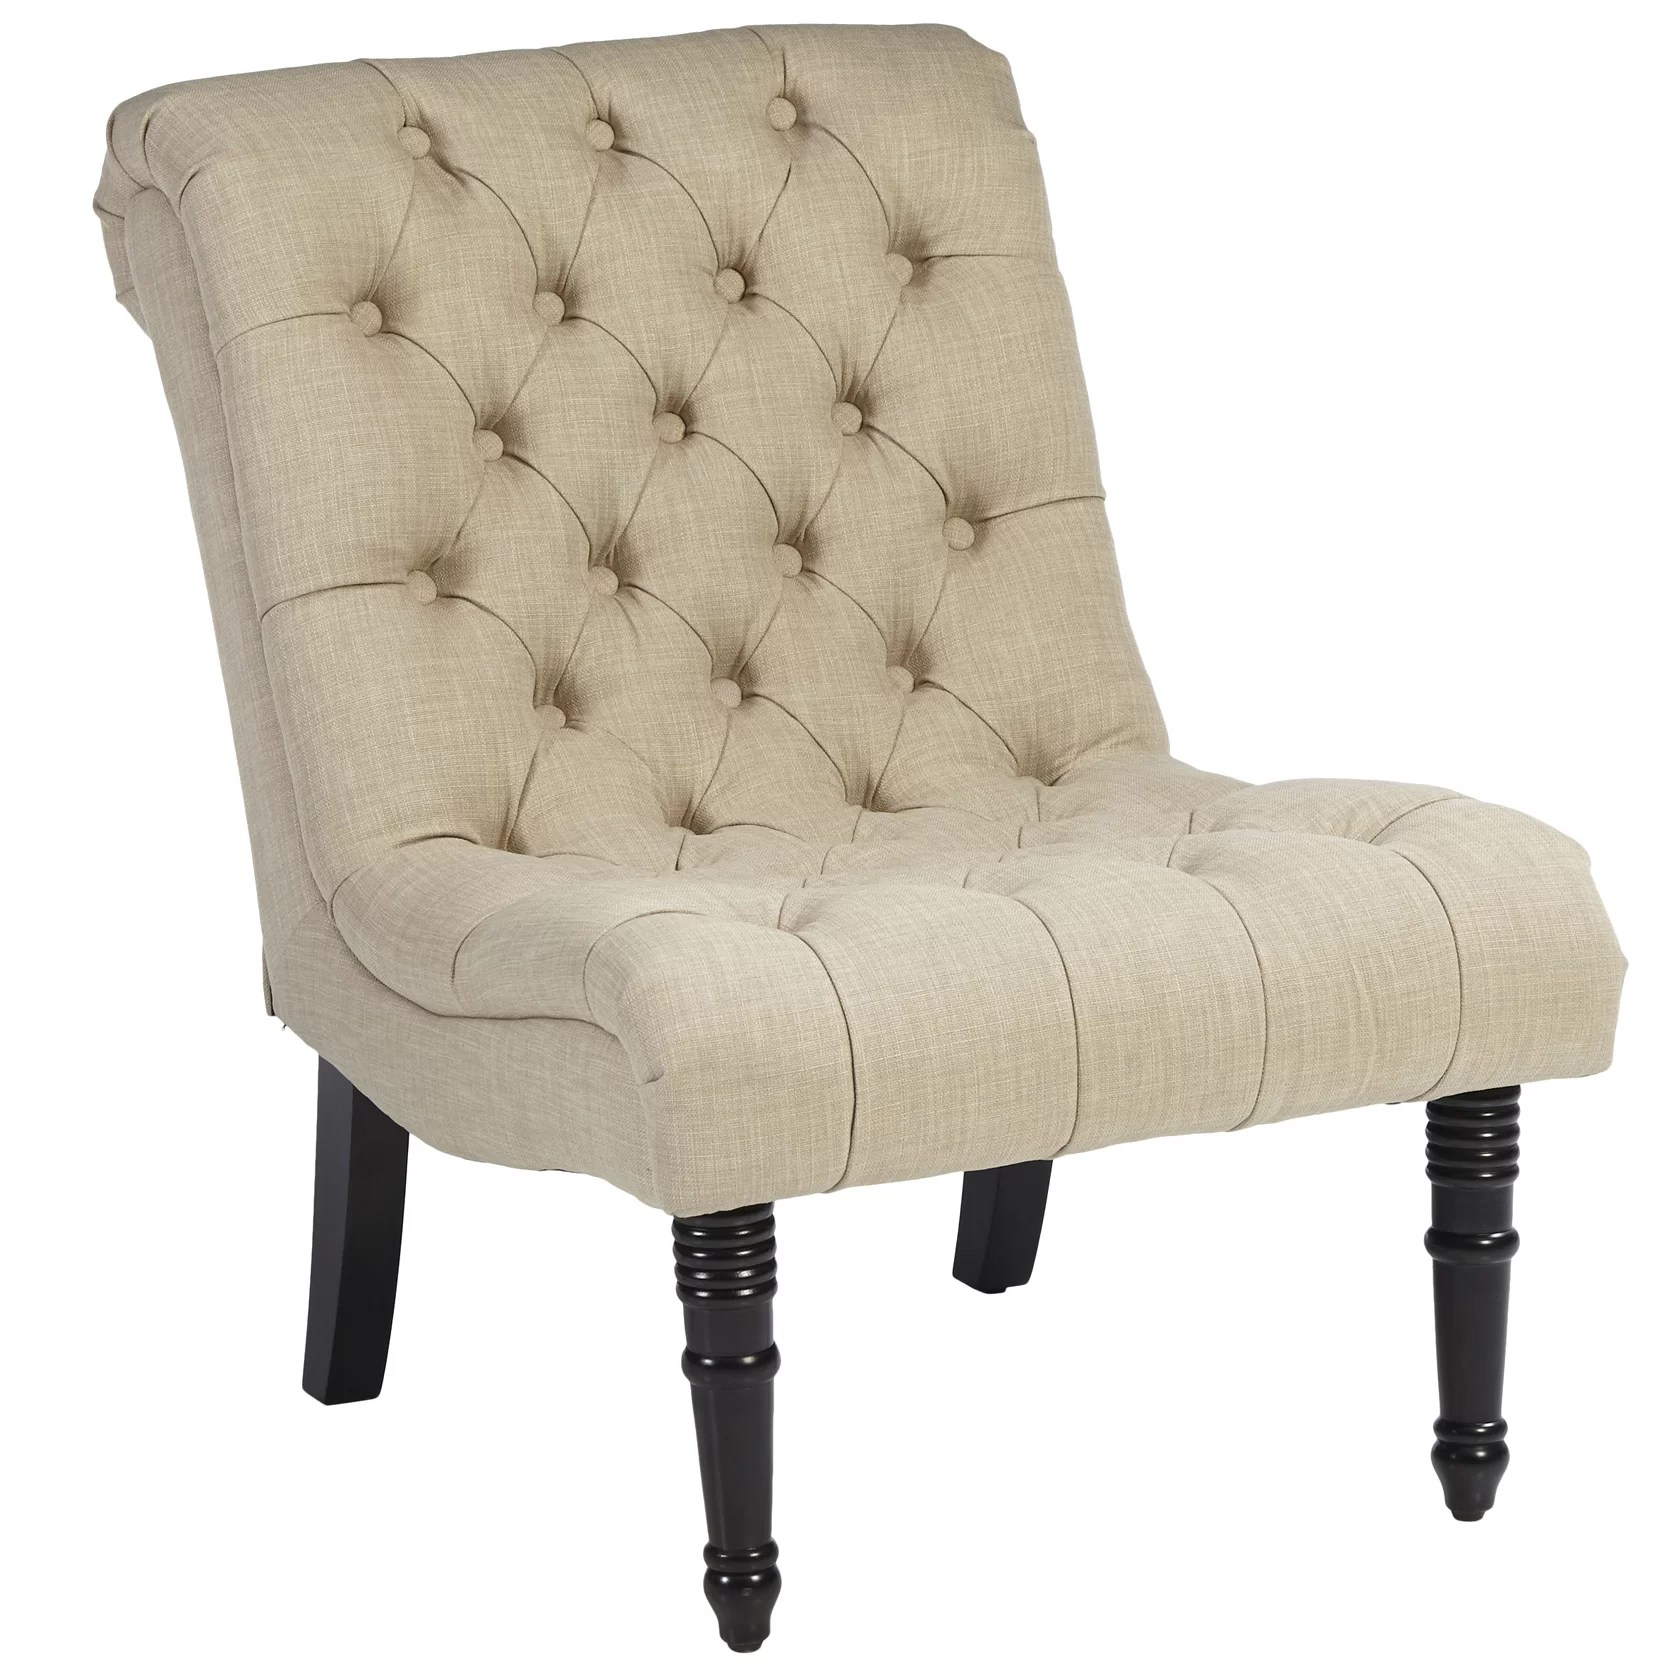 Tufted Slipper Chair Alcott Hill Clarke Scroll Back Tufted Slipper Chair